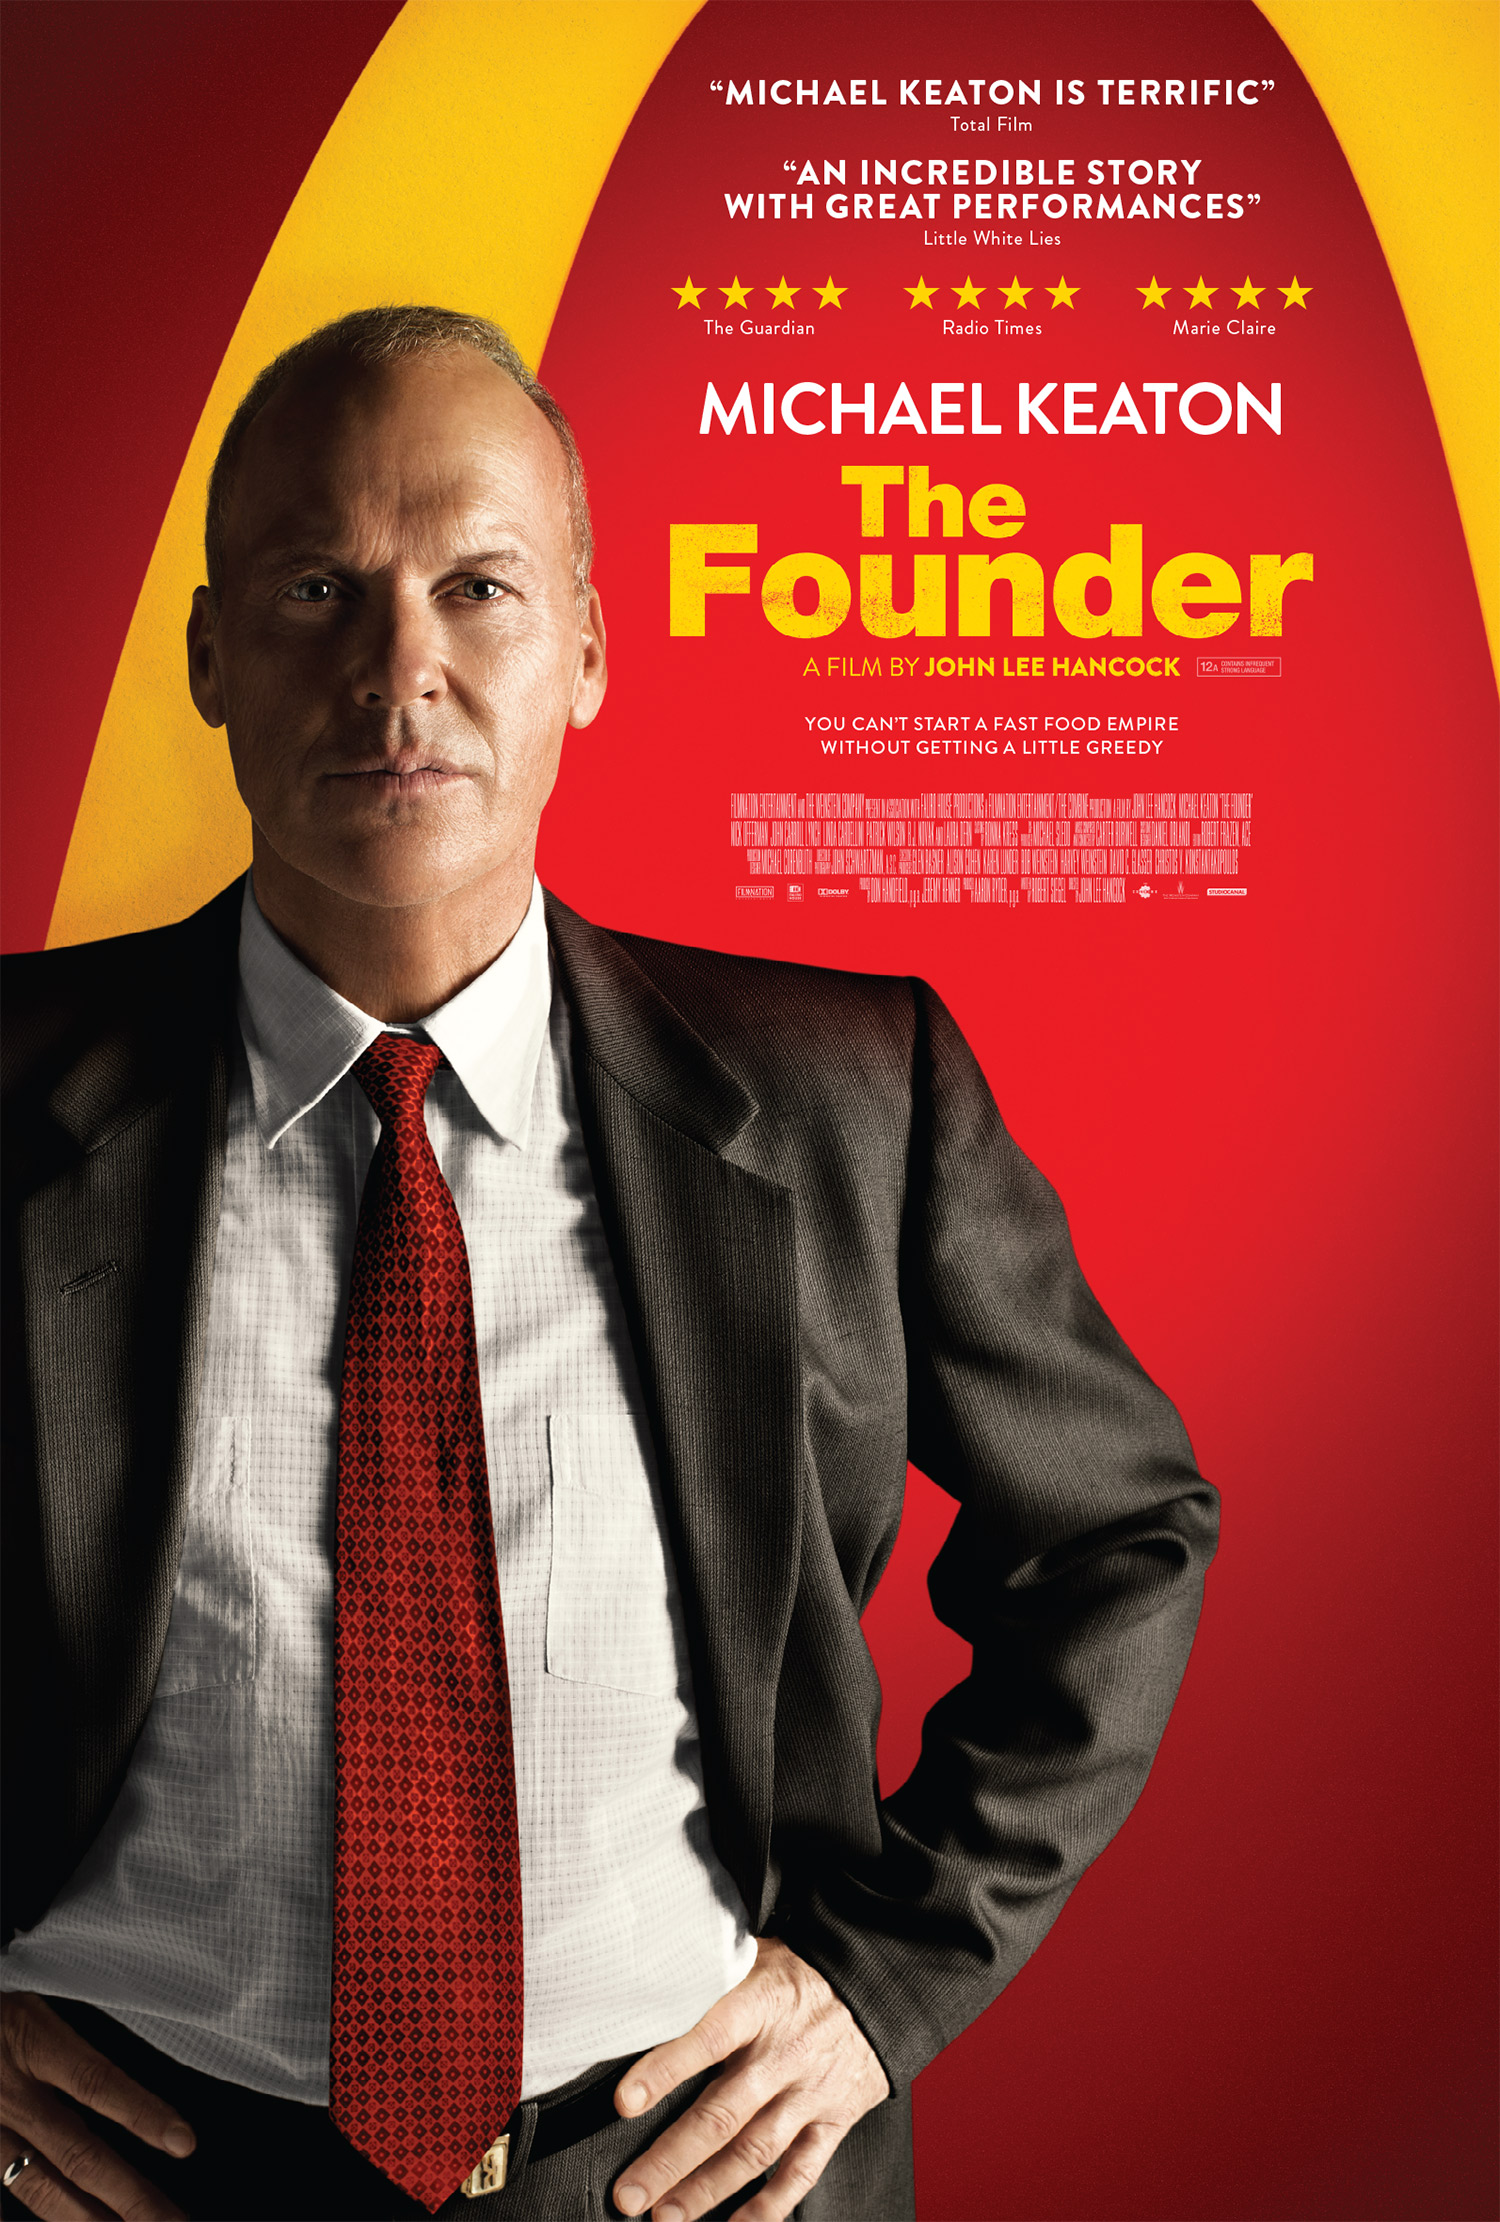 The Founder 1 Sheet Artwork